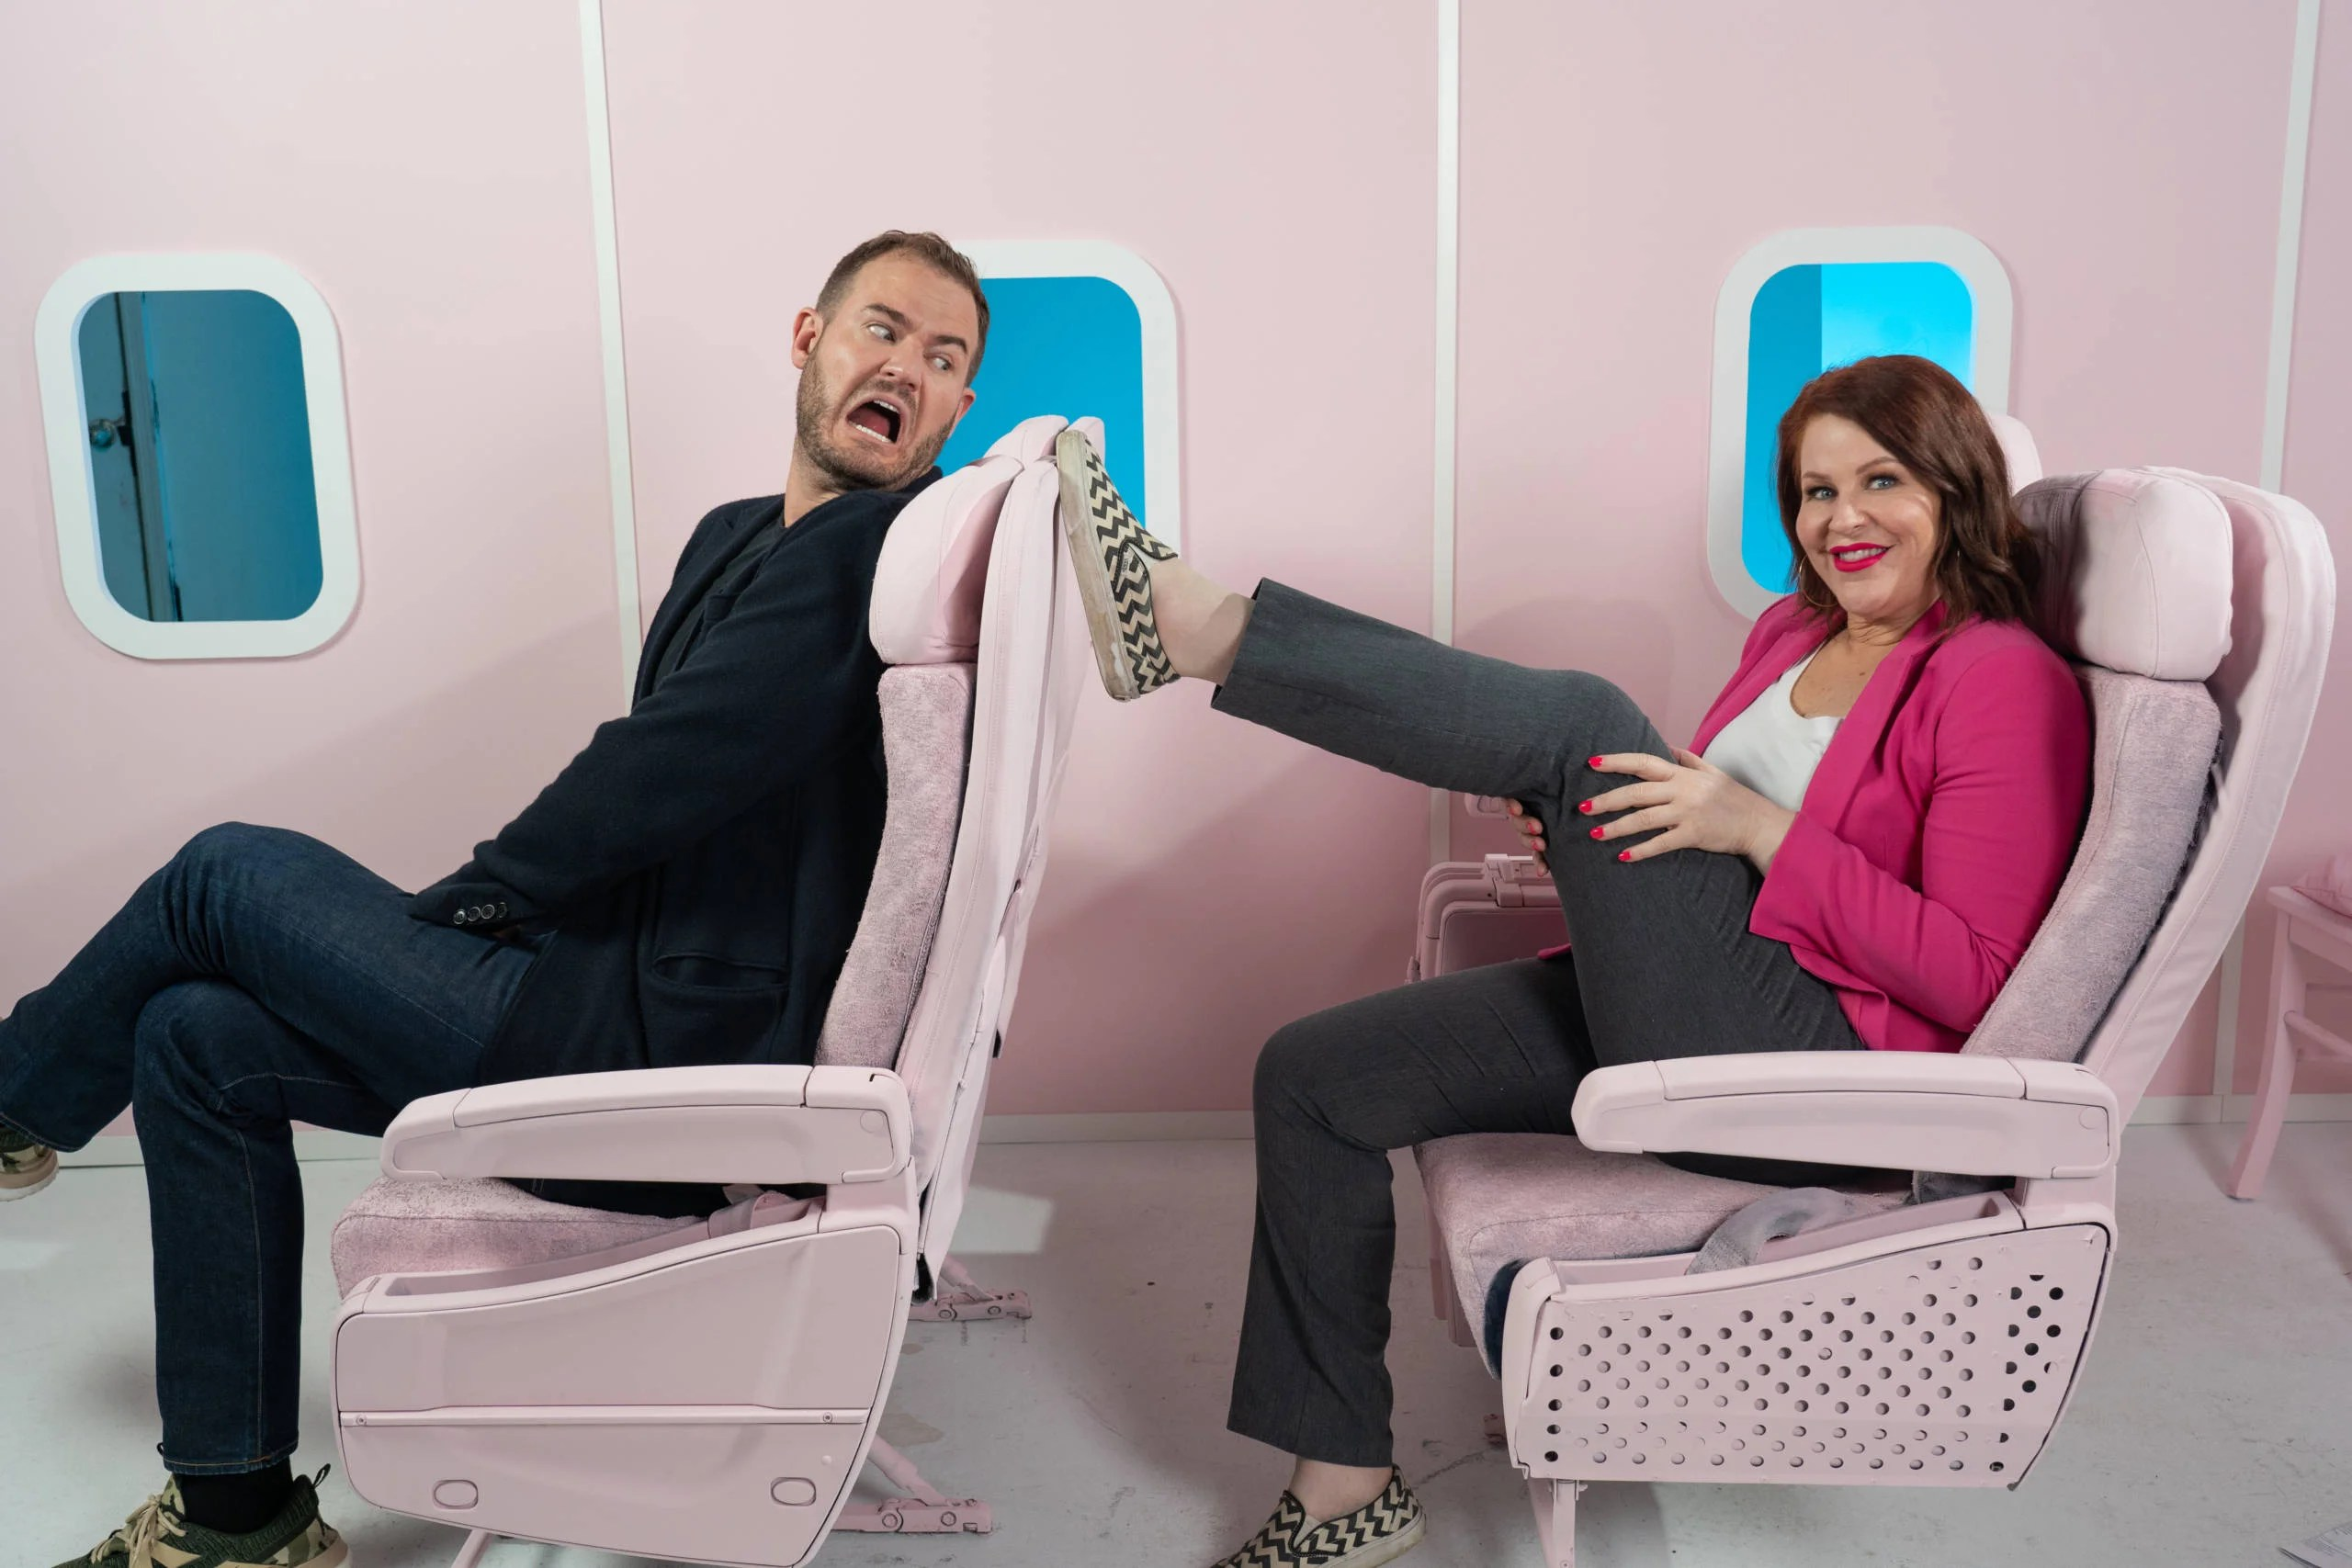 Travel etiquette: The final word on the right to recline